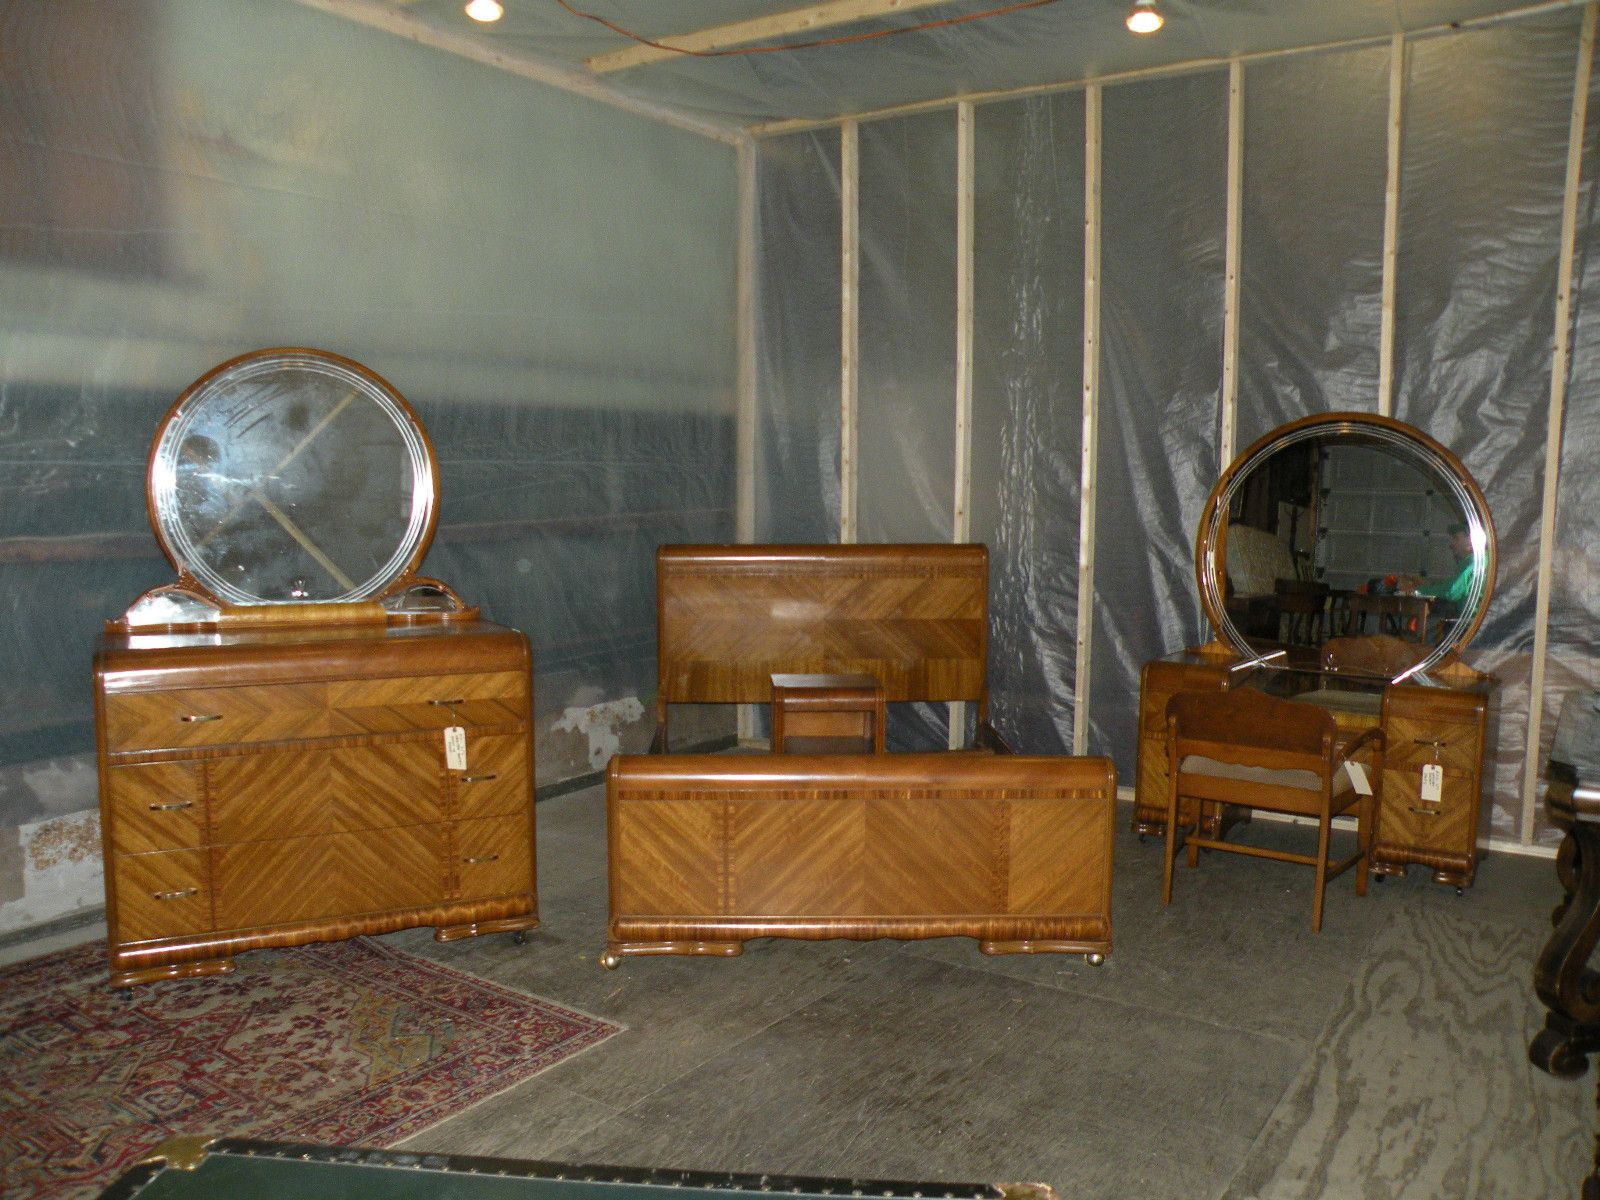 BEAUTIFUL Antique Art Deco Waterfall Furniture Bedroom Set Full - 20 art deco furniture finds